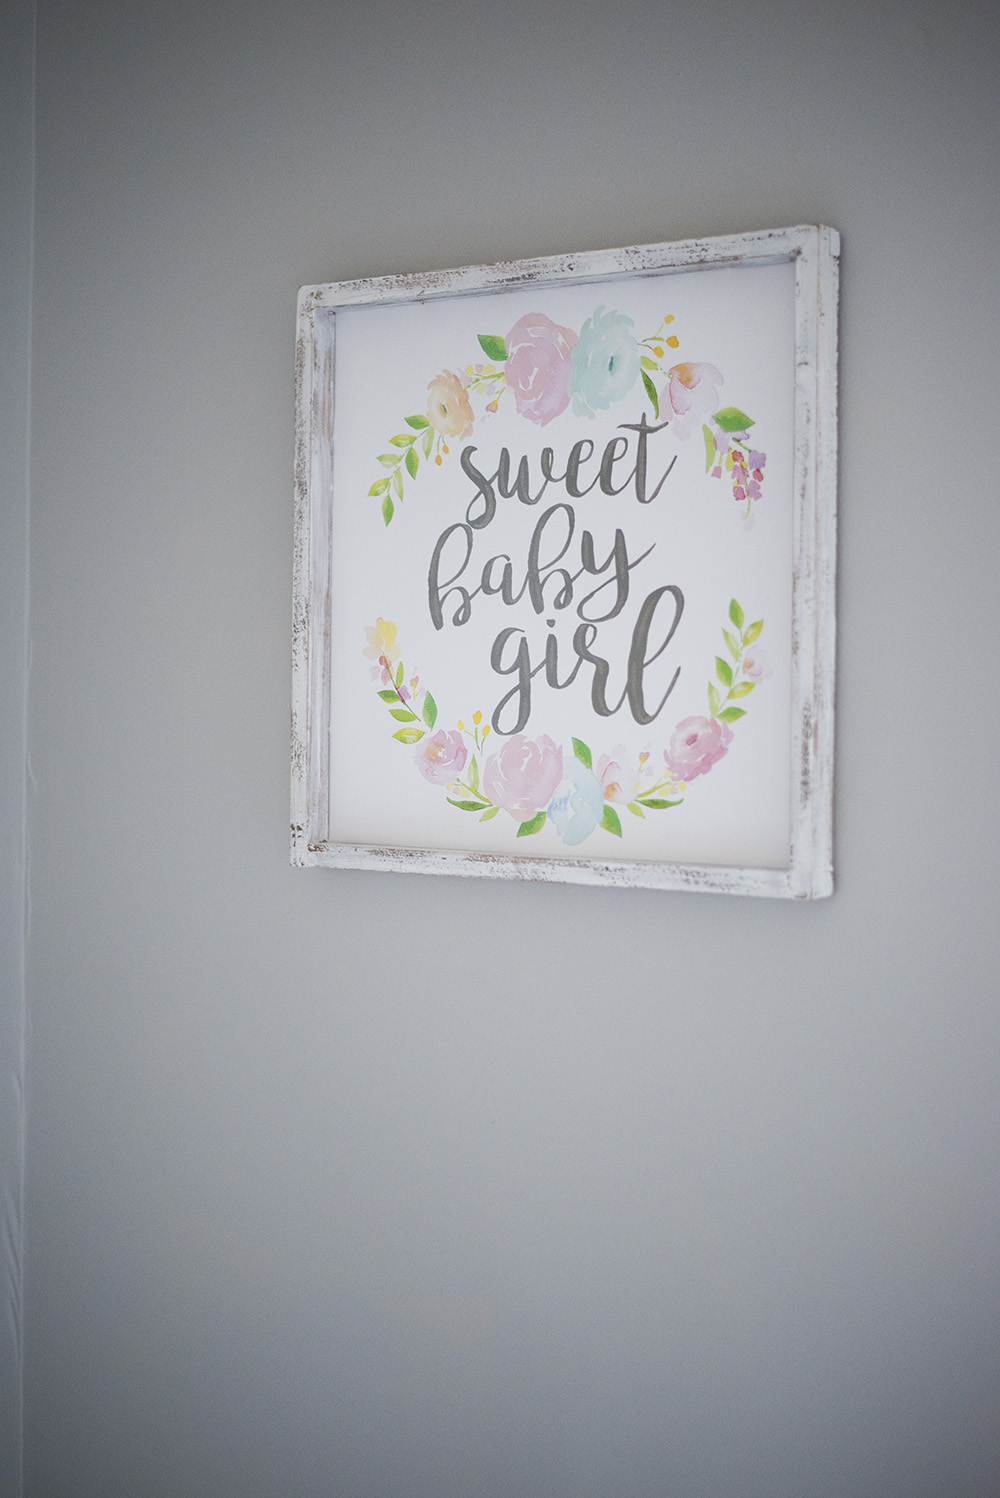 Baby girl nursery decor + 10 must haves for the baby nursery.